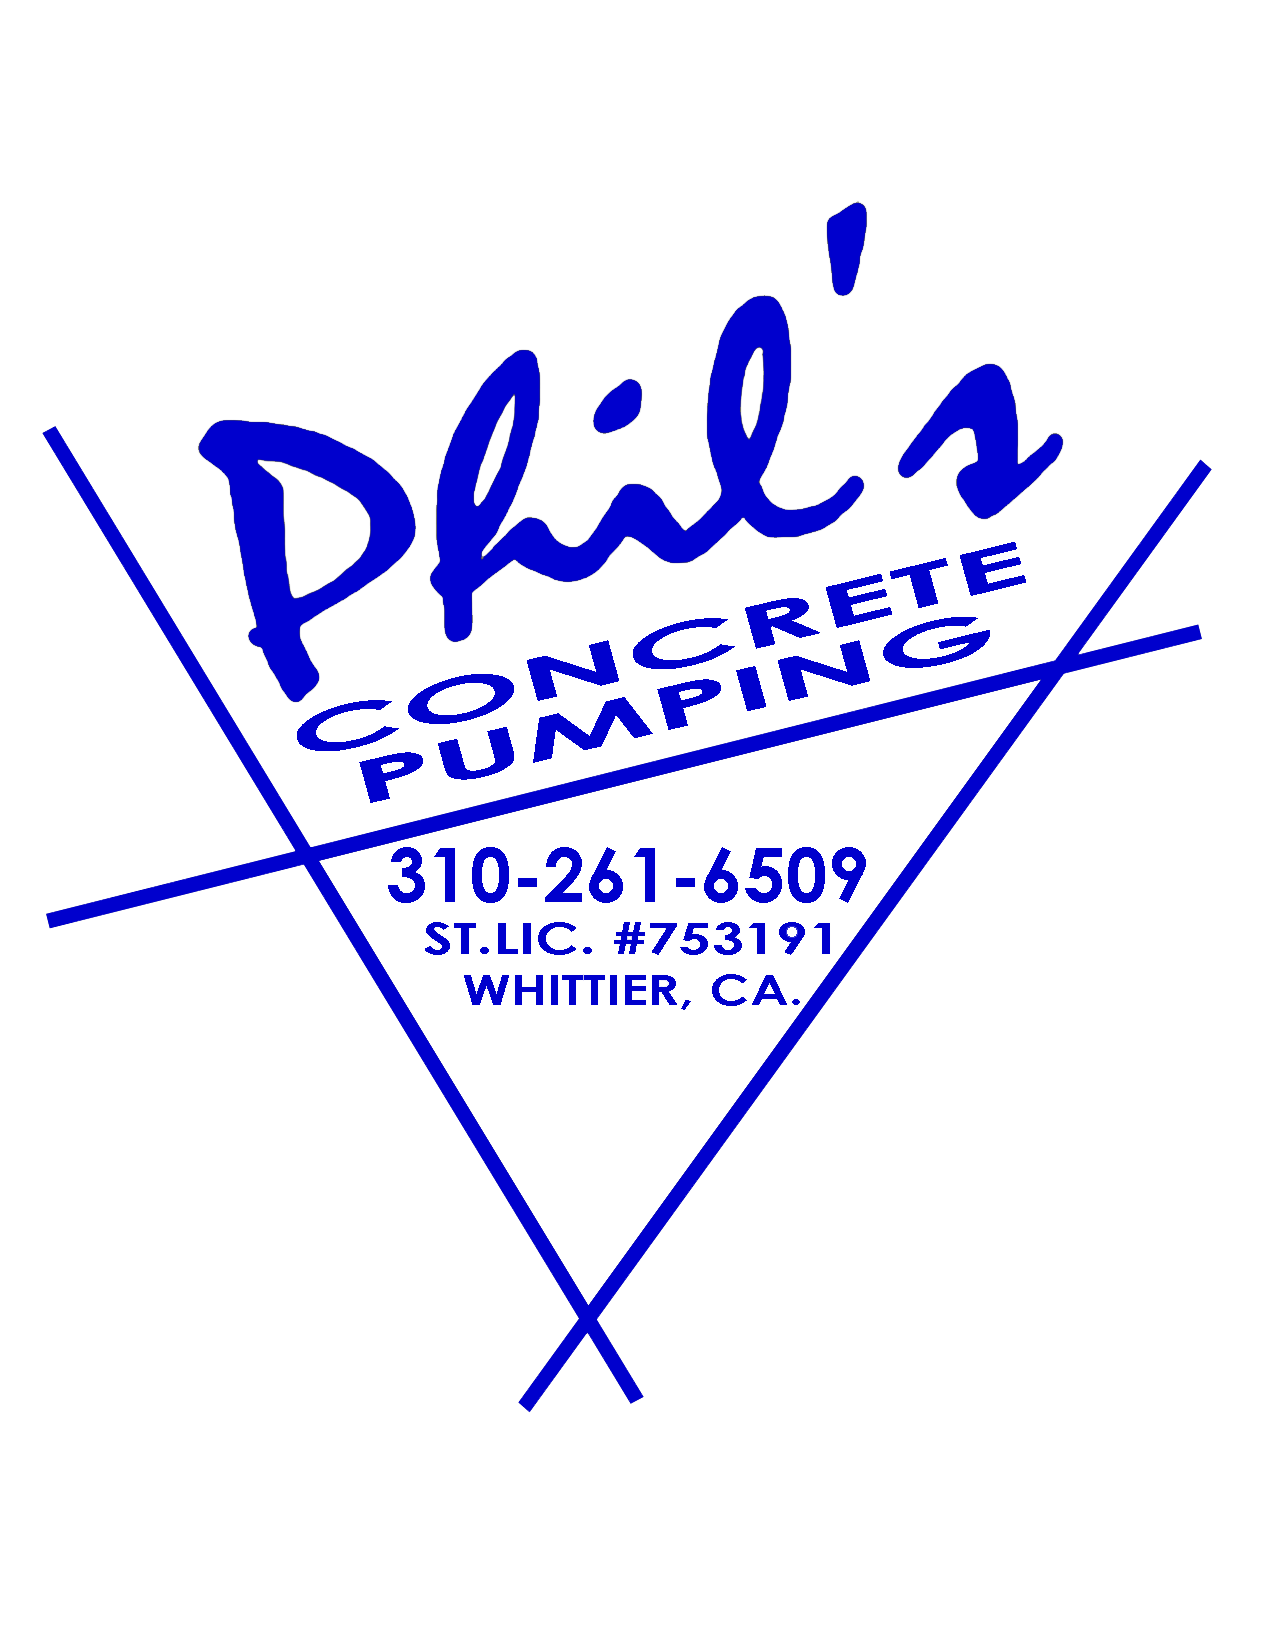 Phil's Concrete Pumping, Inc.